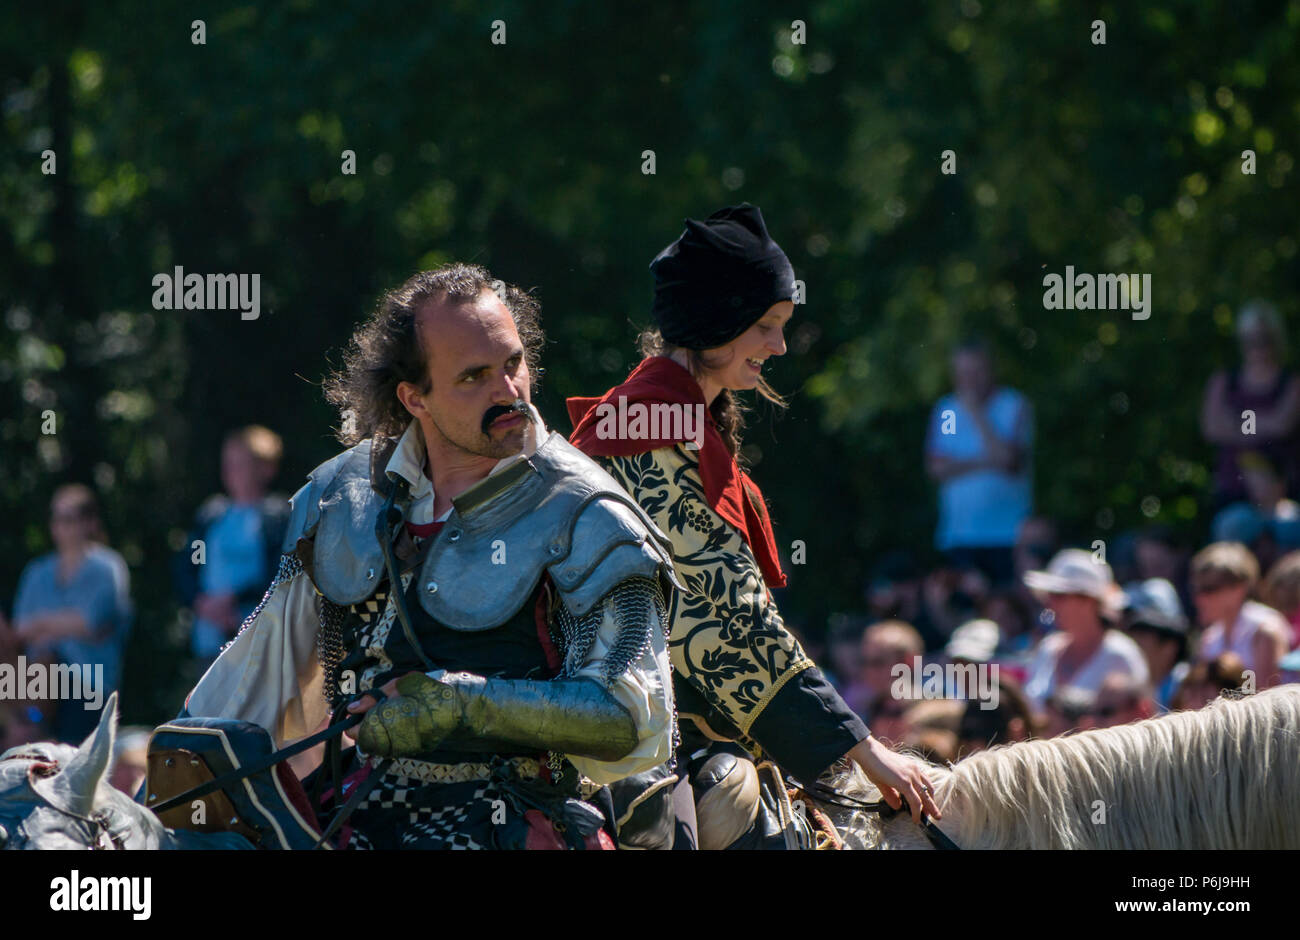 Jousting and Medieval Fair at Linlithgow Palace, Linlithgow, Scotland, United Kingdom, 30th June 2018. Historic Environment Scotland kick off their summer entertainment programme with a fabulous display of Medieval jousting in the grounds of the historic castle. The family fun day includes living history camps, medieval games, crafts, archery, and falconry. The jousting is performed by Les Amis D'Onno equine stunt team based in the Borders. Knight Sir Checkmate Fitzpercy, played by Jacob Martin - Stock Image